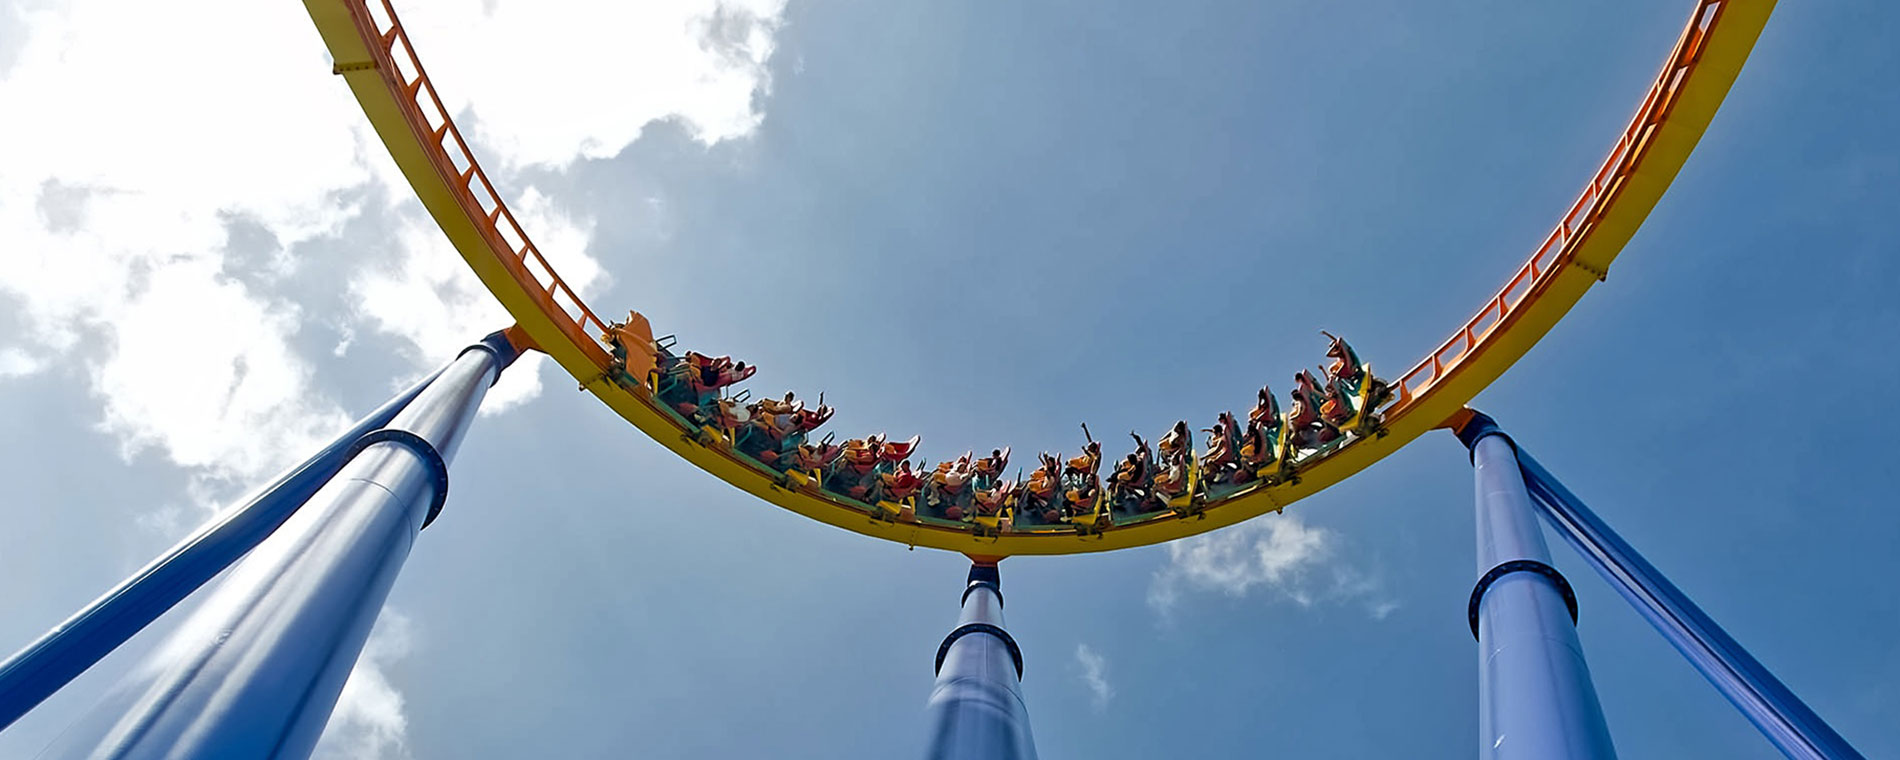 Opening Day at Canada's Wonderland